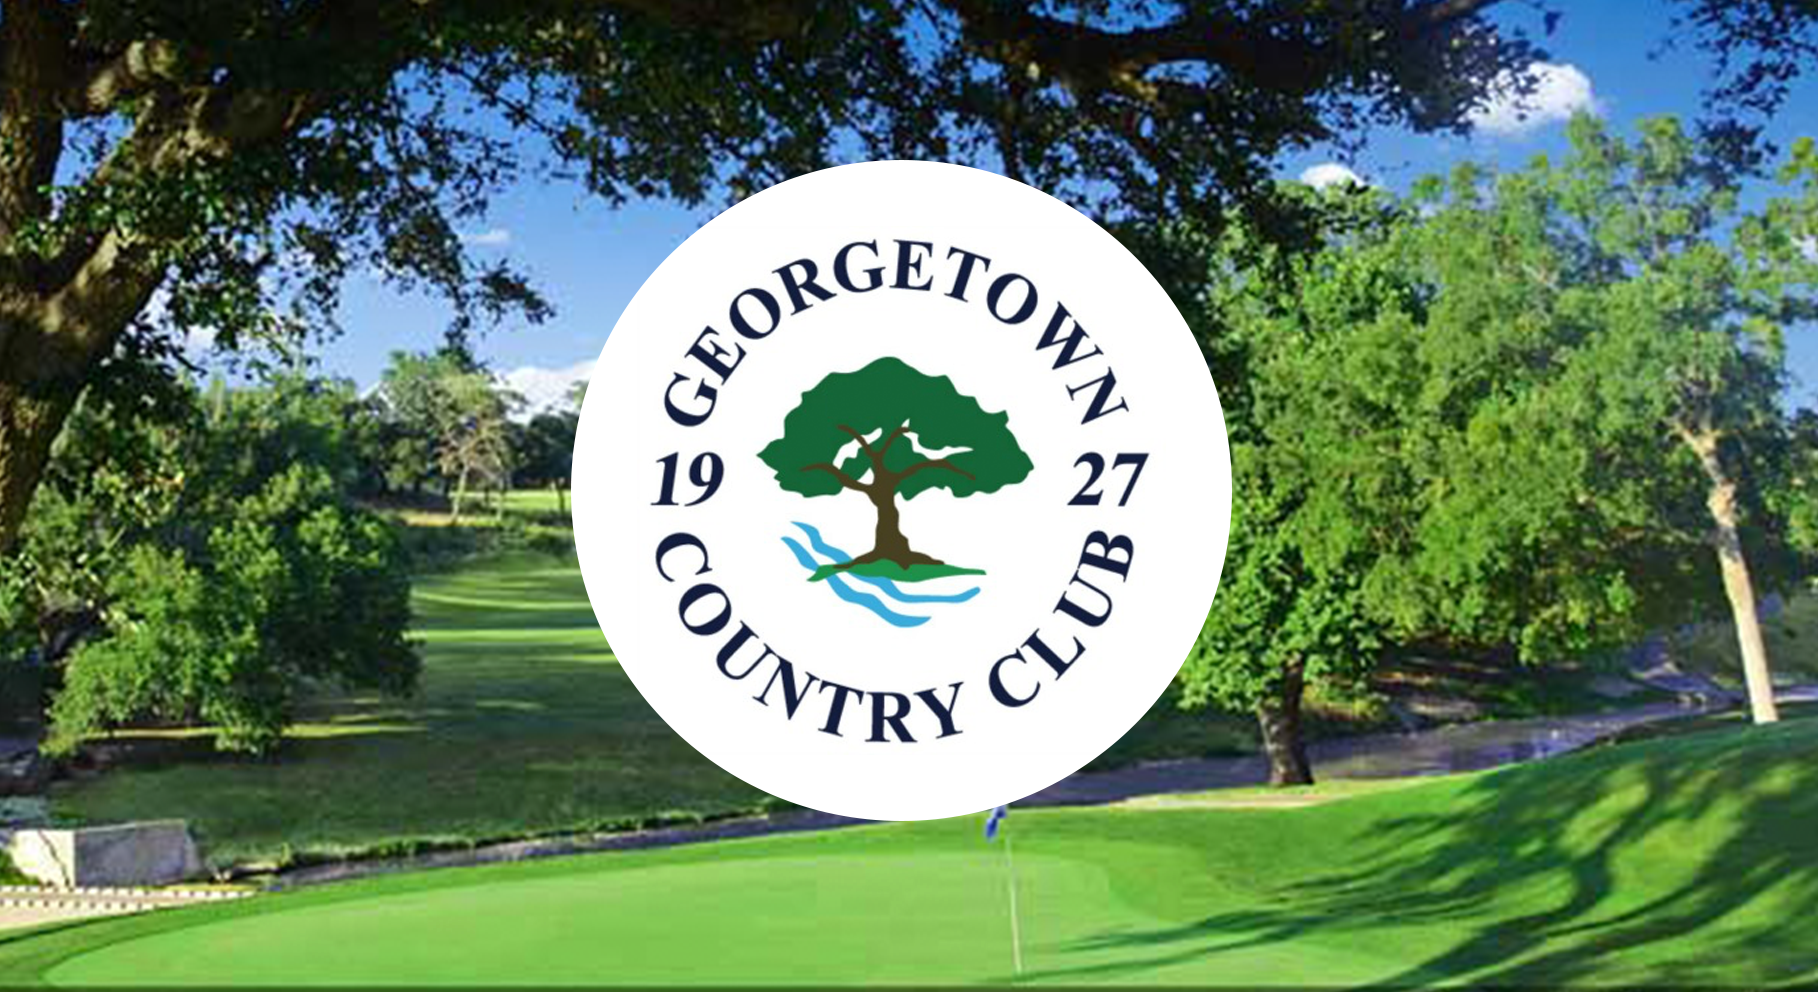 georgetown-country-club.png